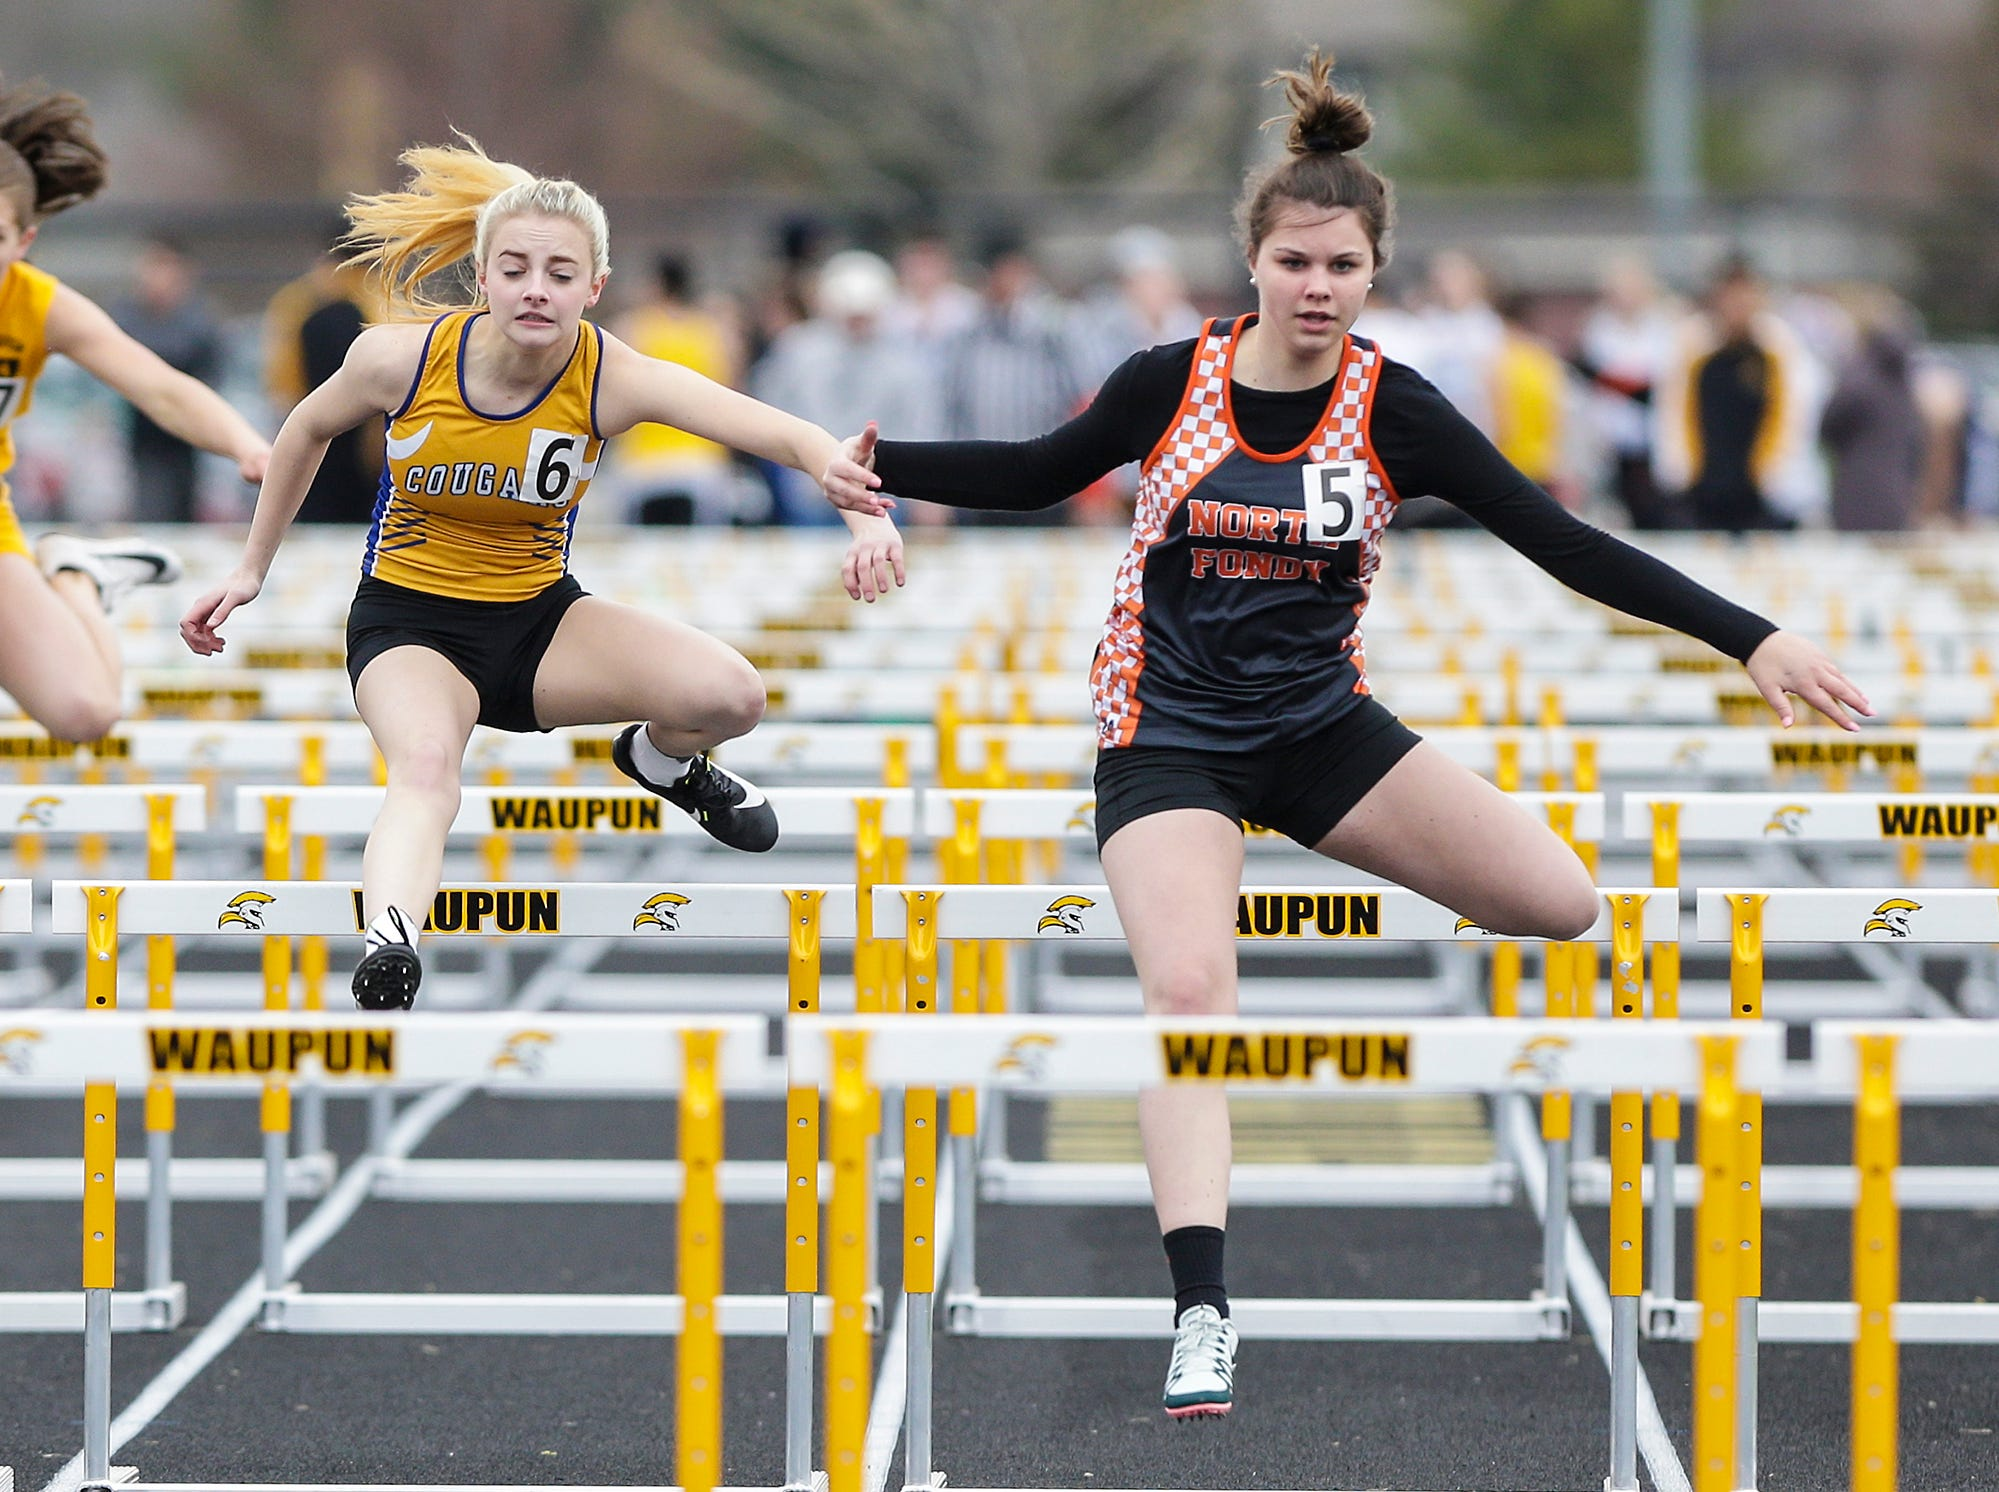 Laurelyn Pritzlaff of Campbellsport High School (6) and Josey Wallender of North Fond du Lac High School compete in the 100 meter hurdles Friday, May 3, 2019 at the Waupun High School Invitational track and field meet. Doug Raflik/USA TODAY NETWORK-Wisconsin